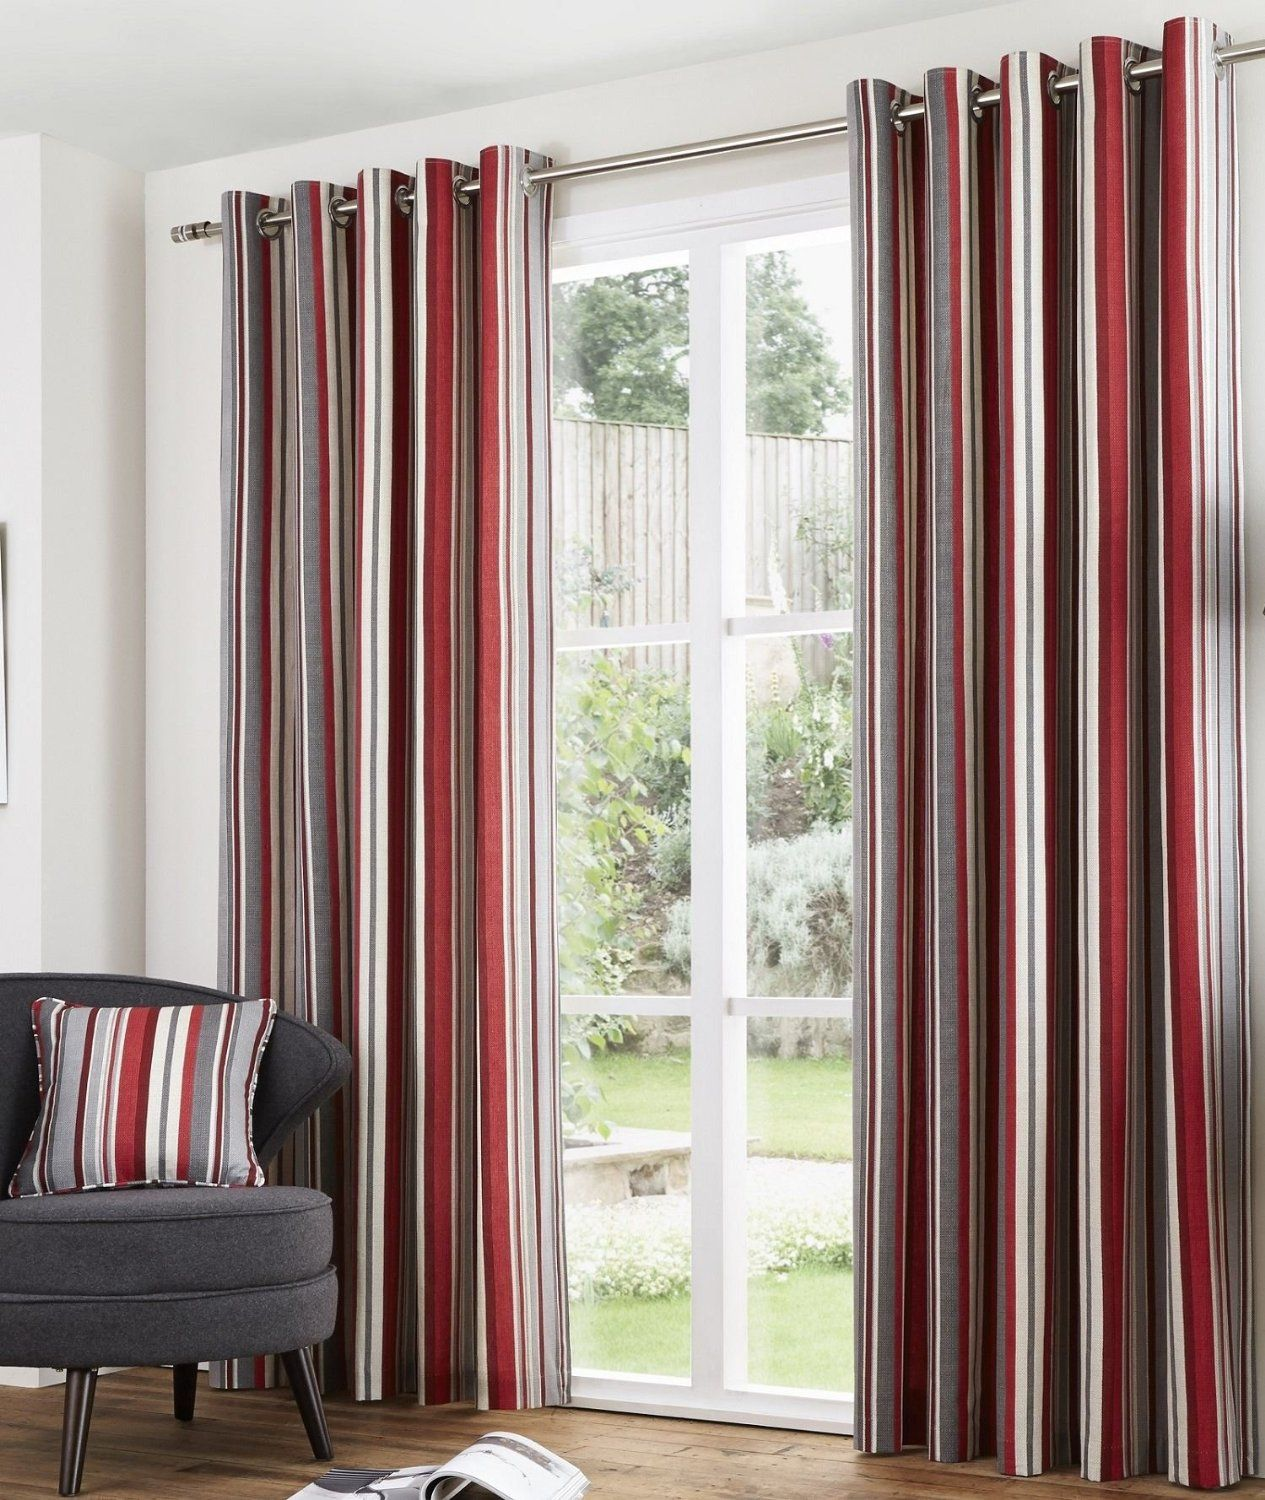 "Kitchen Curtains Amazon Co Uk: Melody Eyelet Lined Curtains 66"" X 72"" Stripe Red Burgundy"